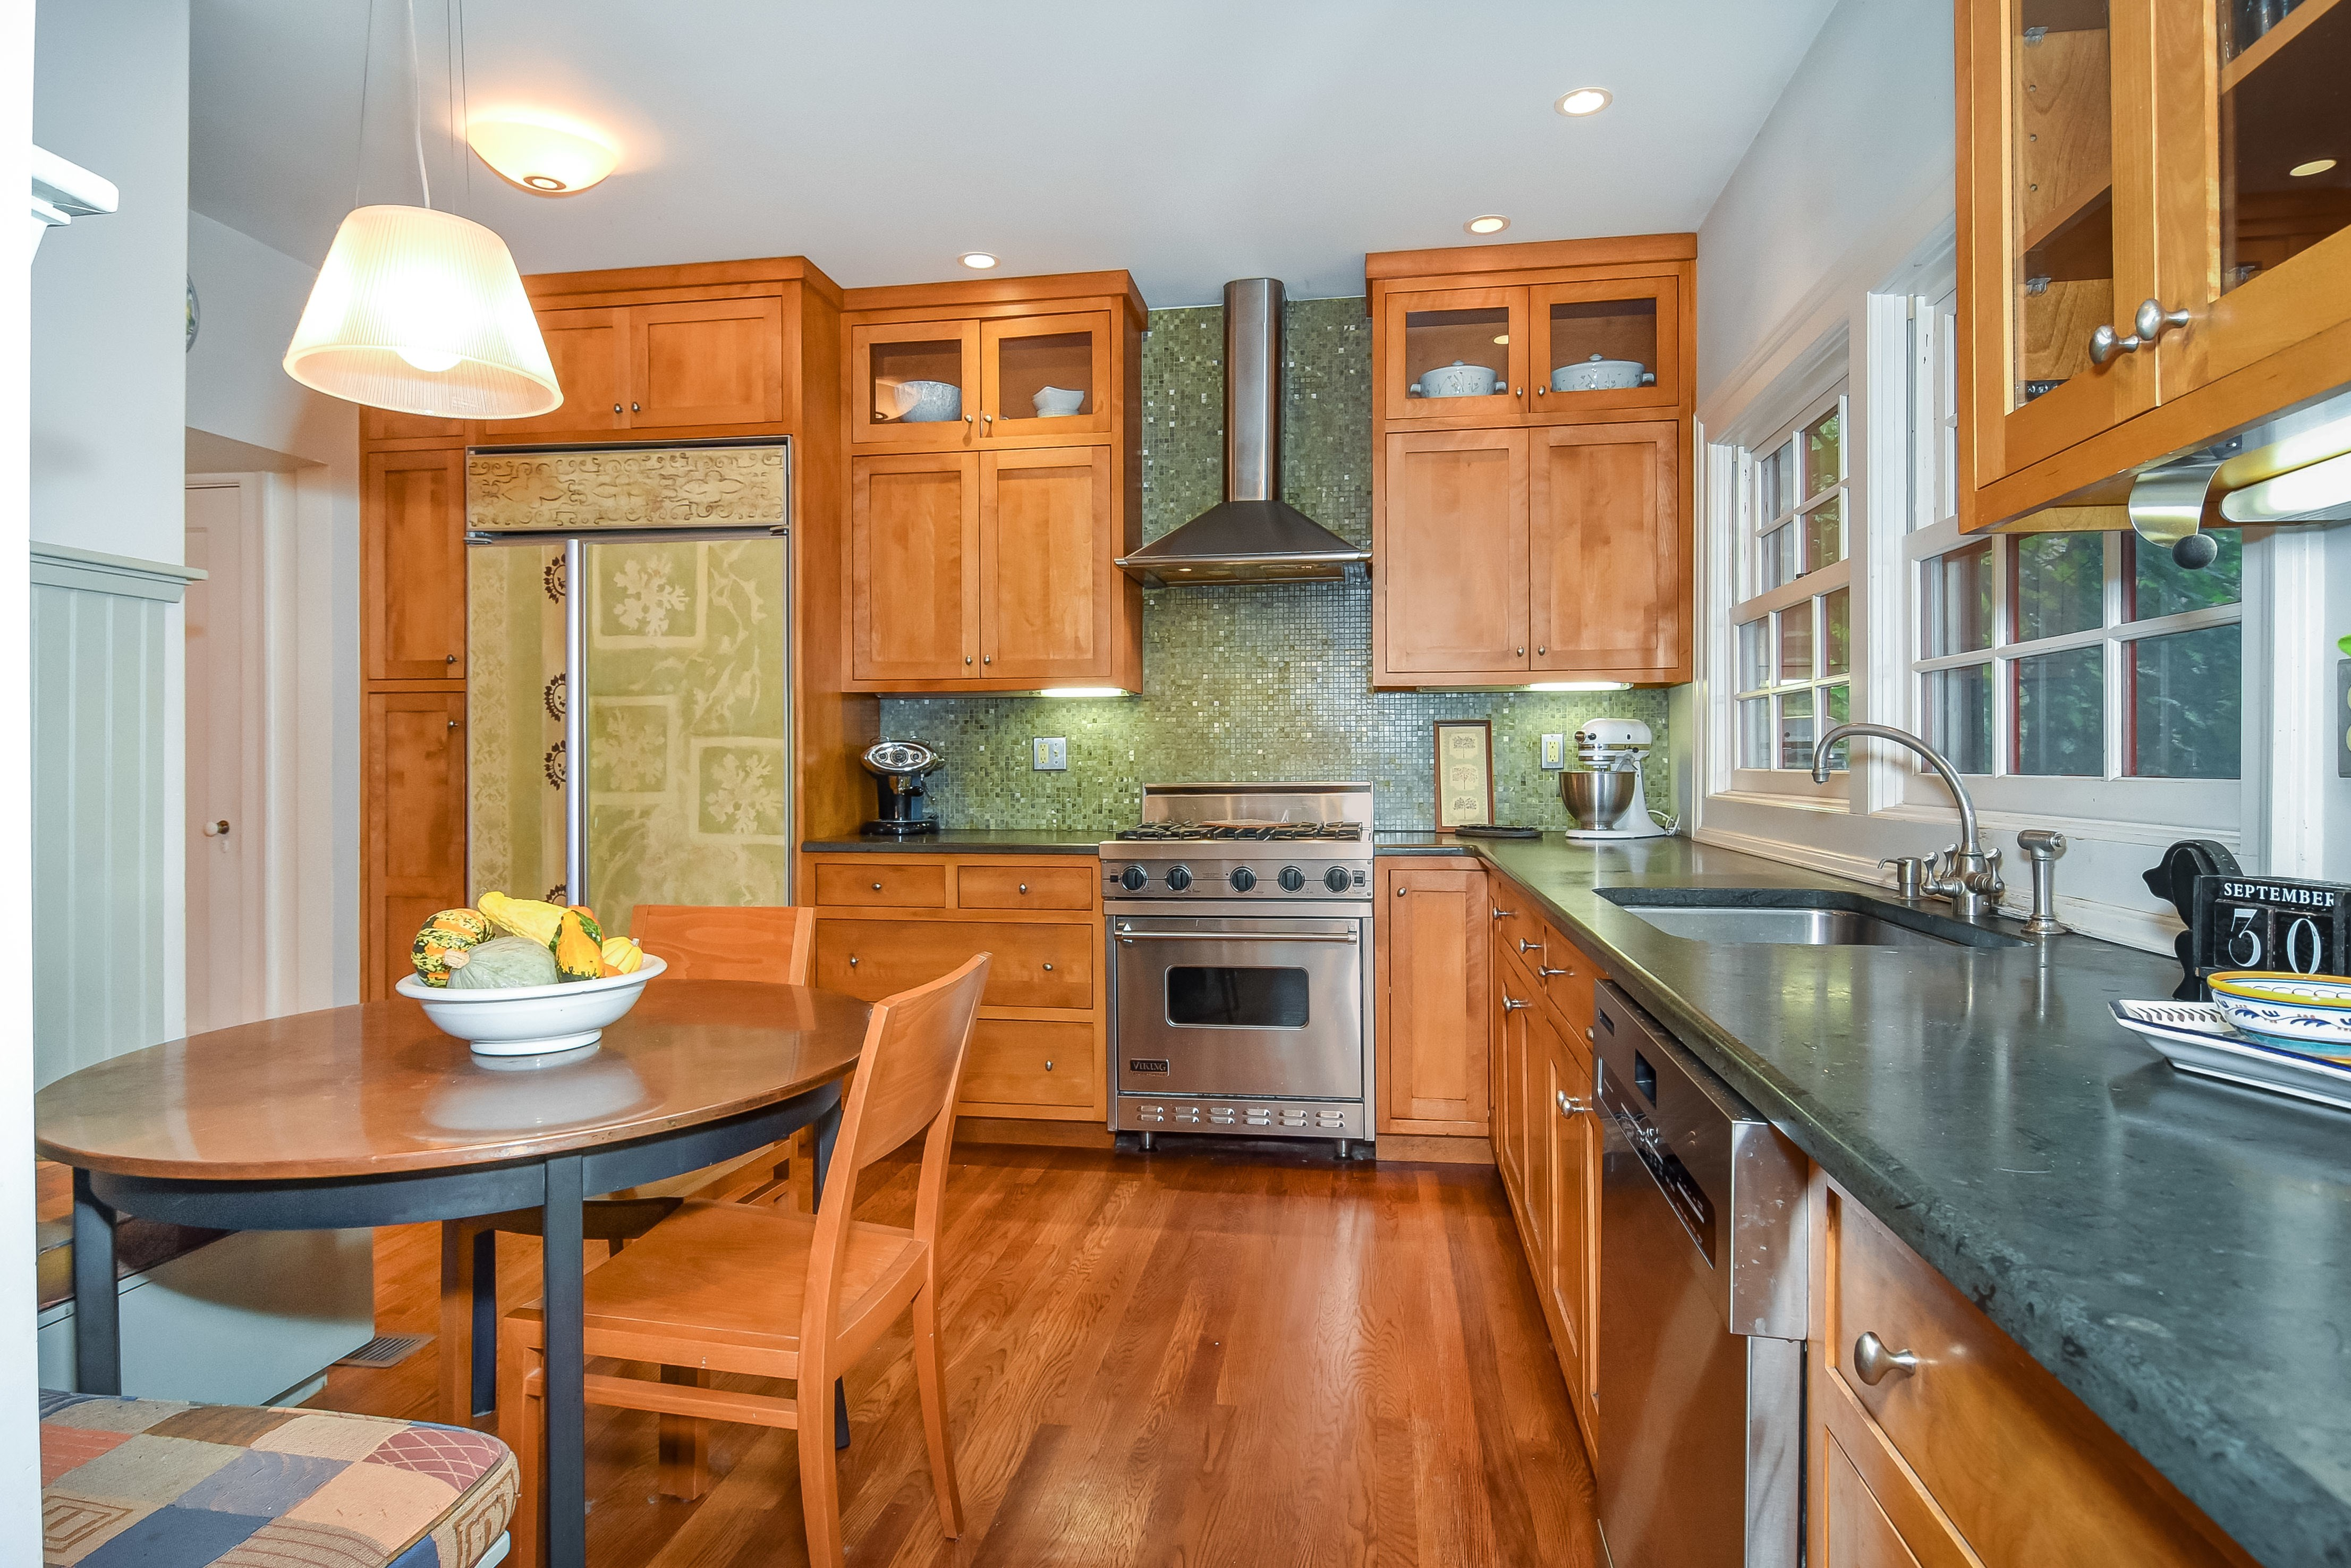 featured property 110 christopher street montclair 6br 3ba 110 christopher